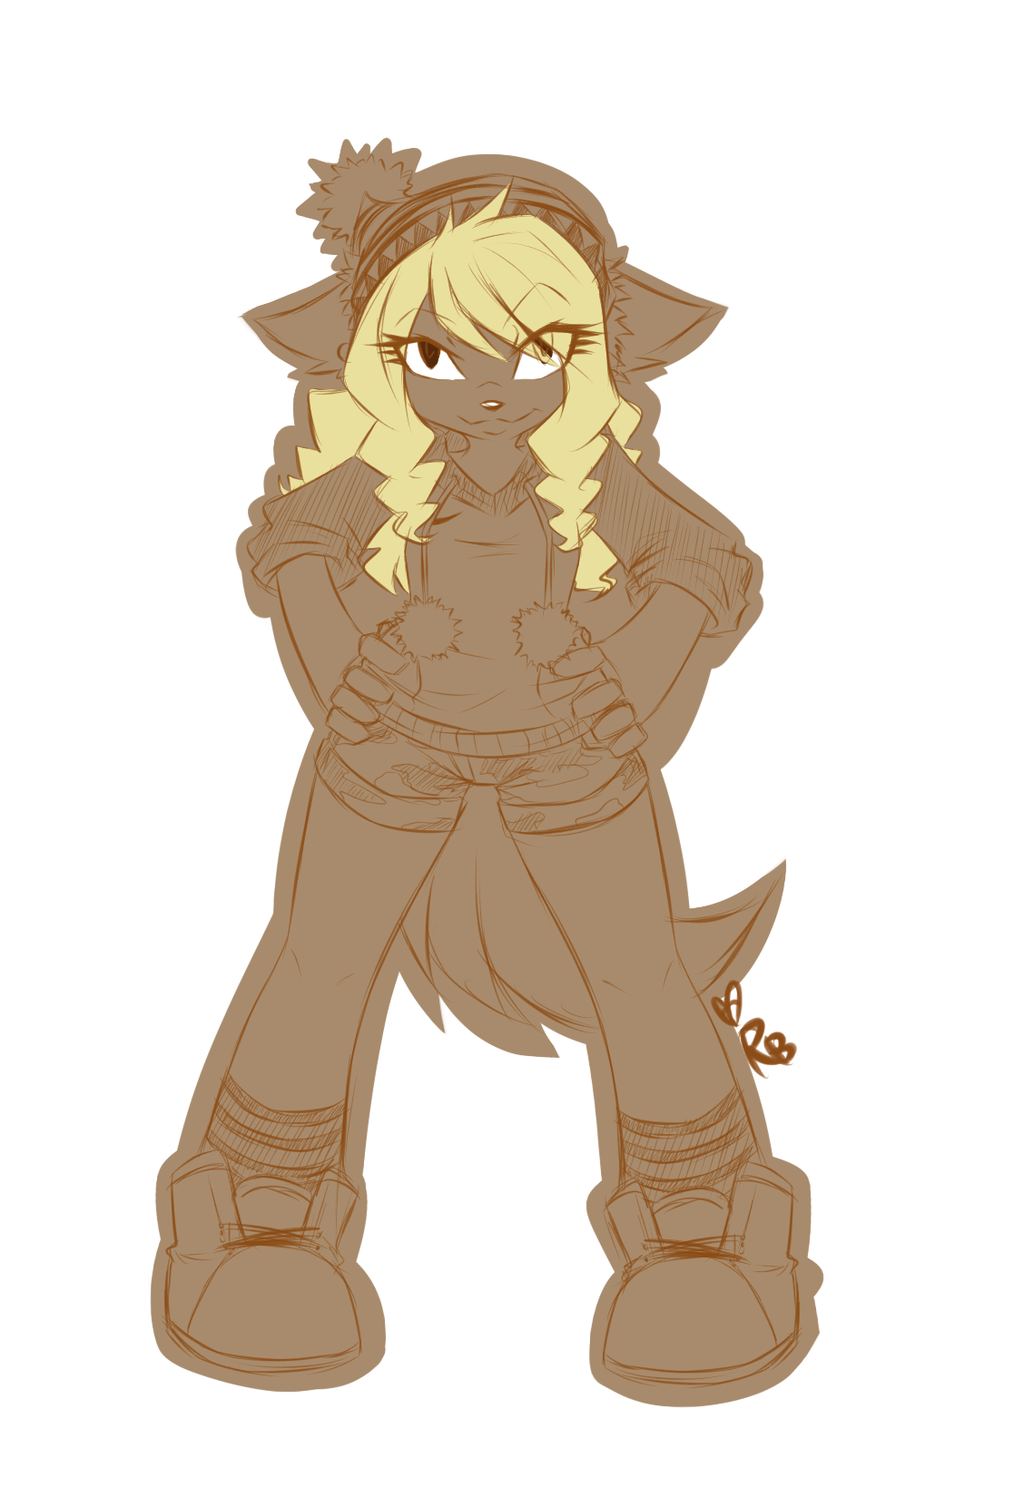 Anthro sketch commission 2